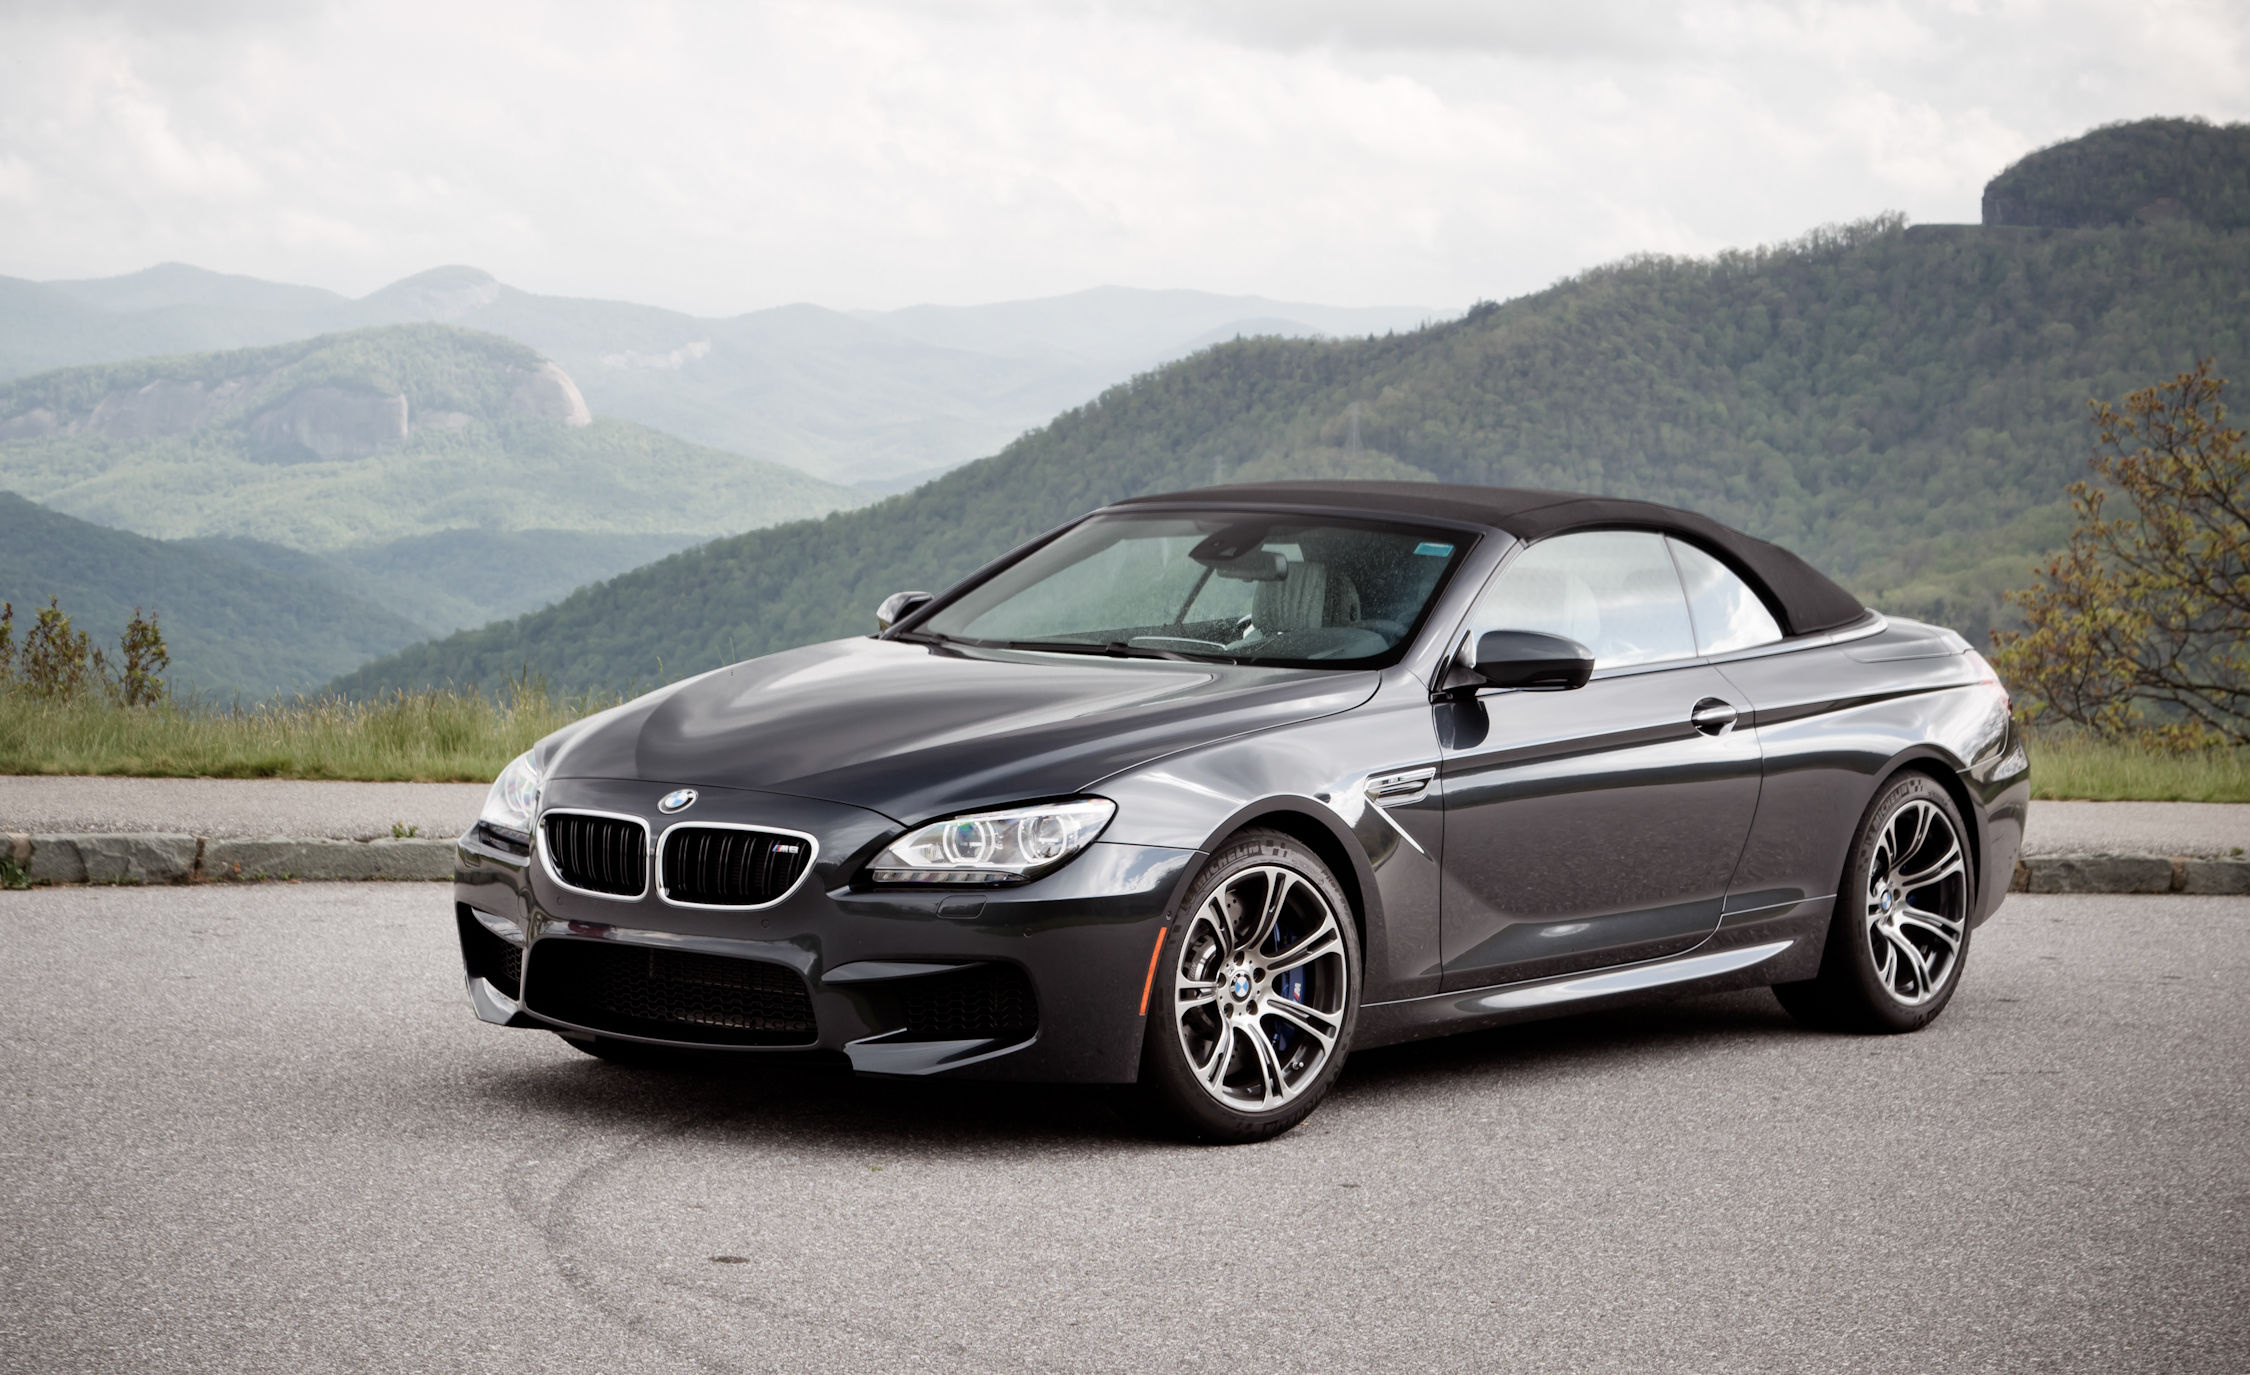 2012 BMW M6 Convertible Exterior Roof Closed (Photo 2 of 30)